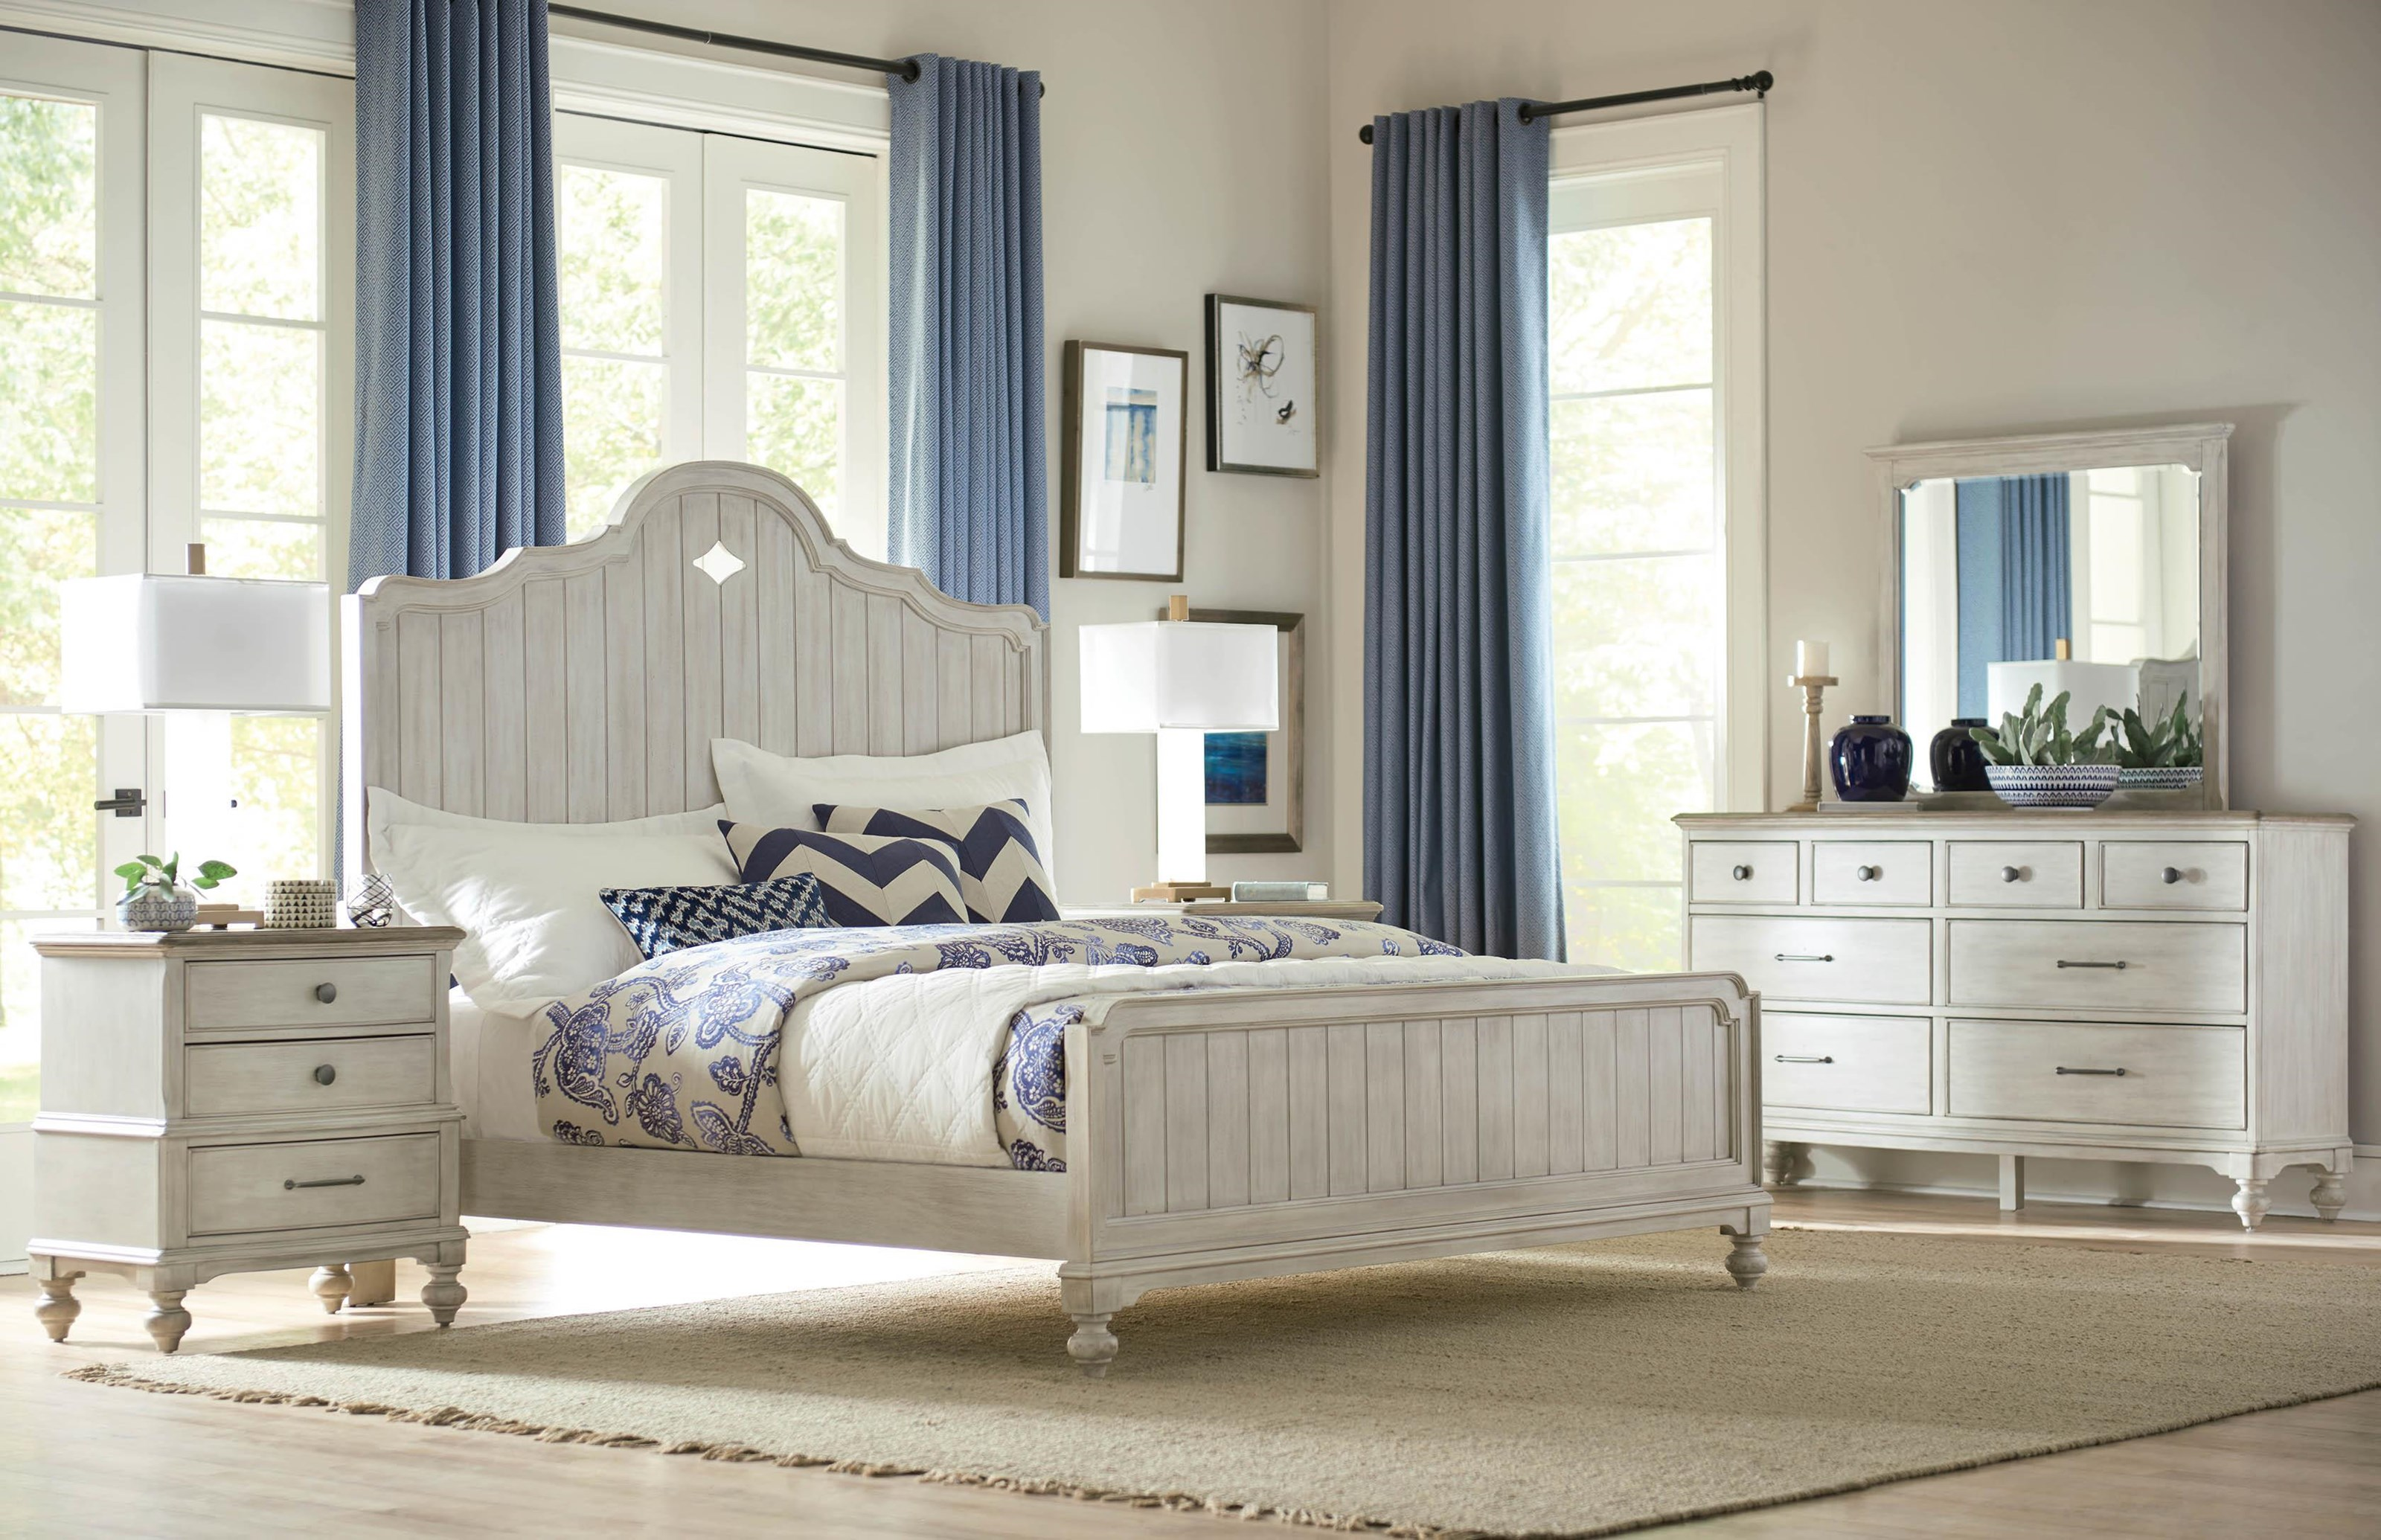 Litchfield Queen Bed, Nightstand, Dresser and Mirror by American Drew at Johnny Janosik